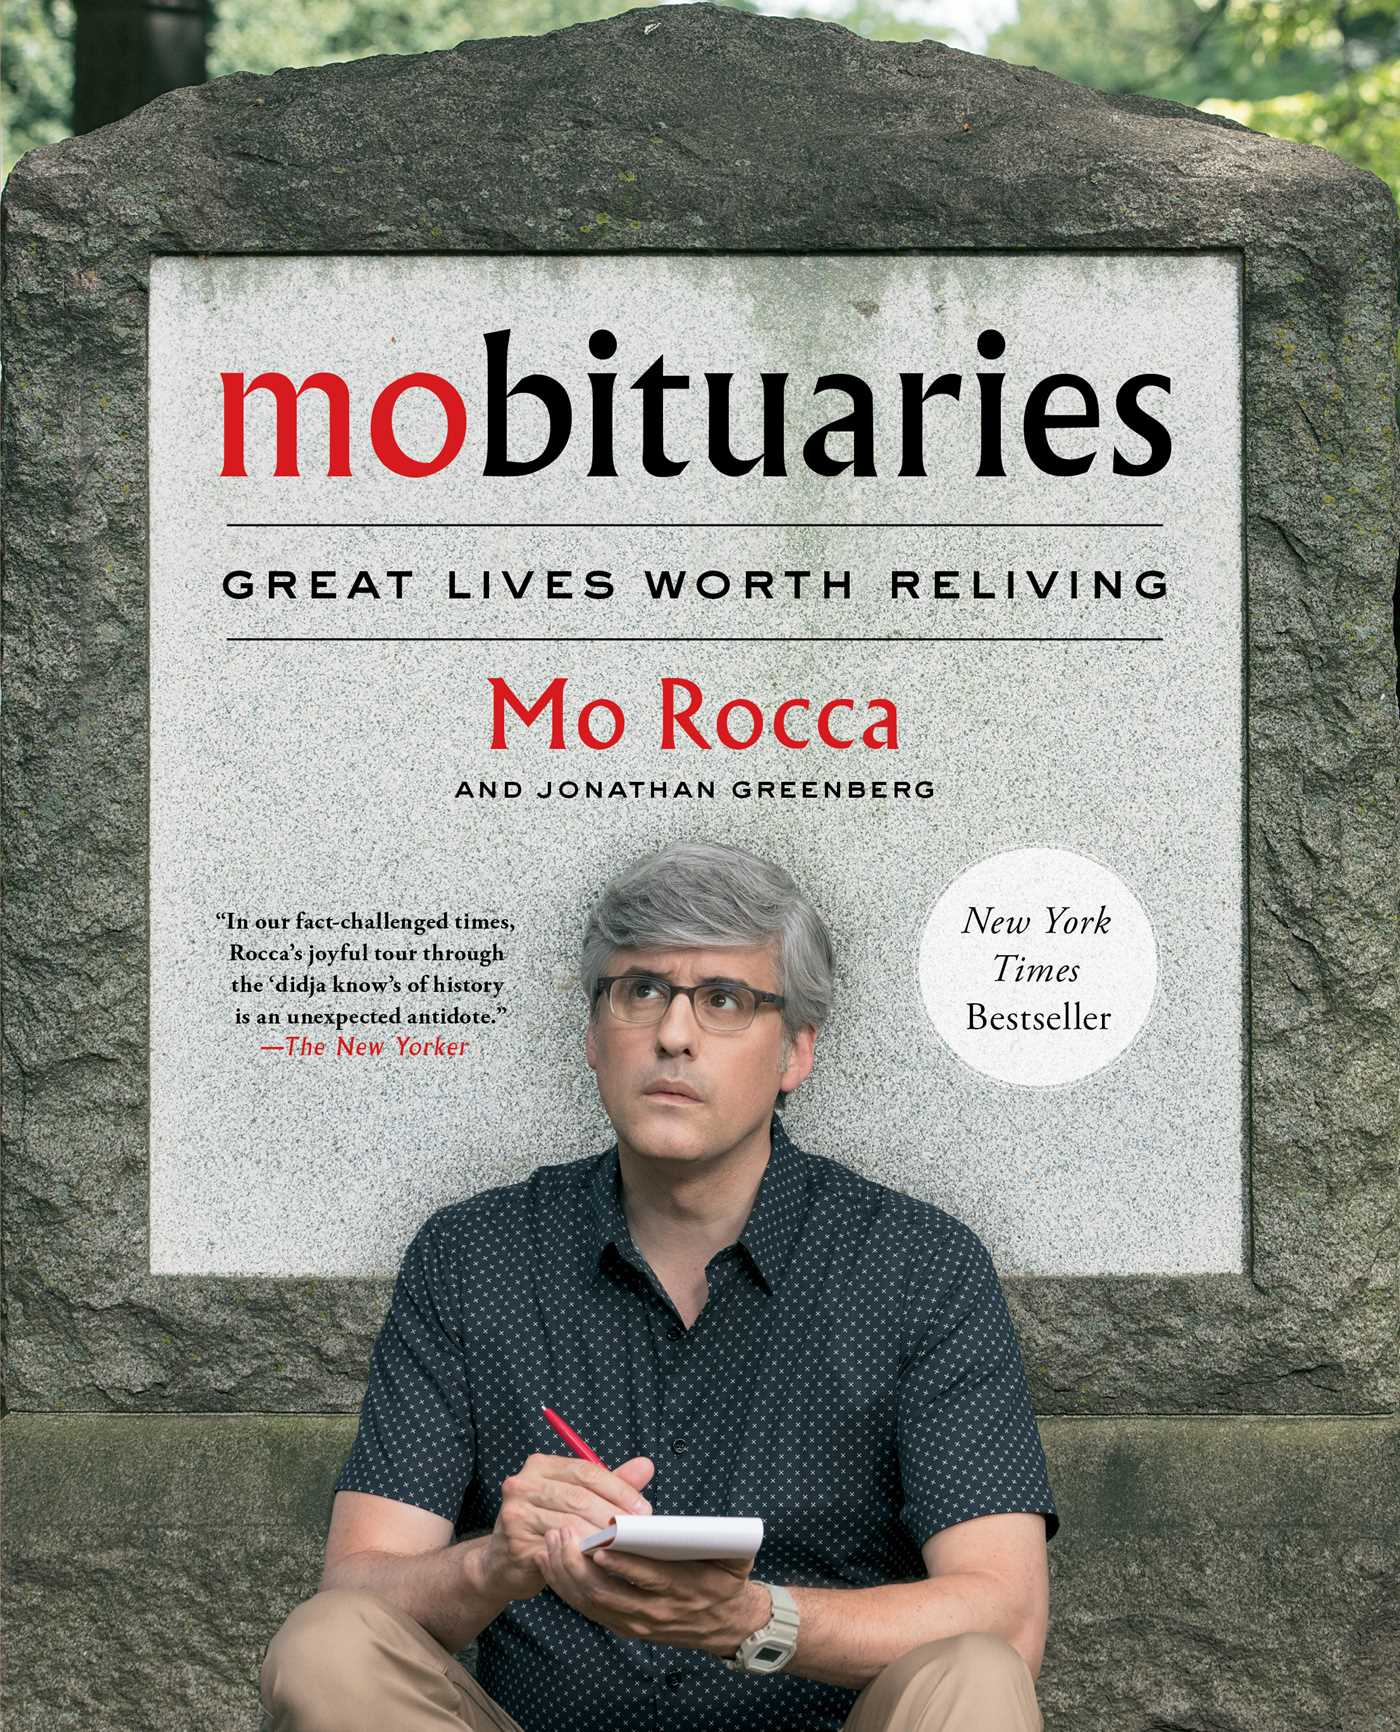 Mobituaries great lives worth reliving